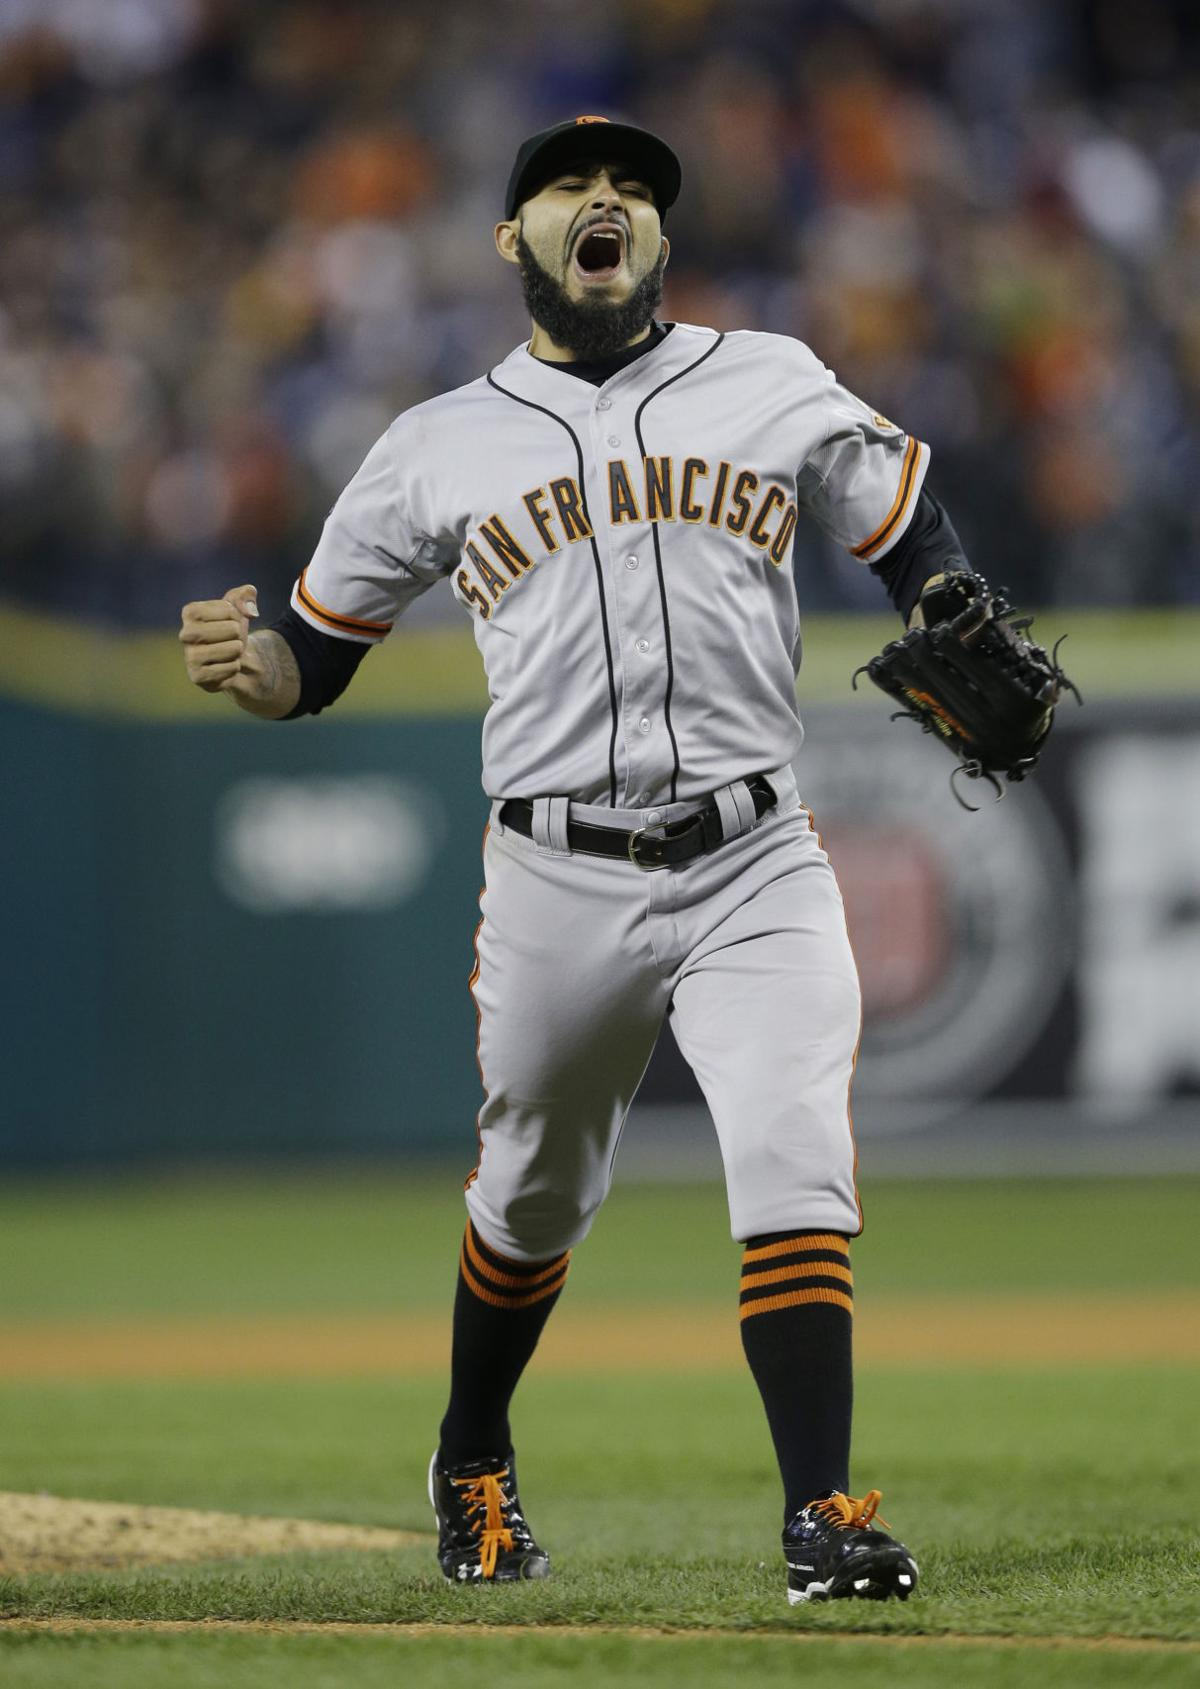 Shutout of Tigers puts Giants on brink of title